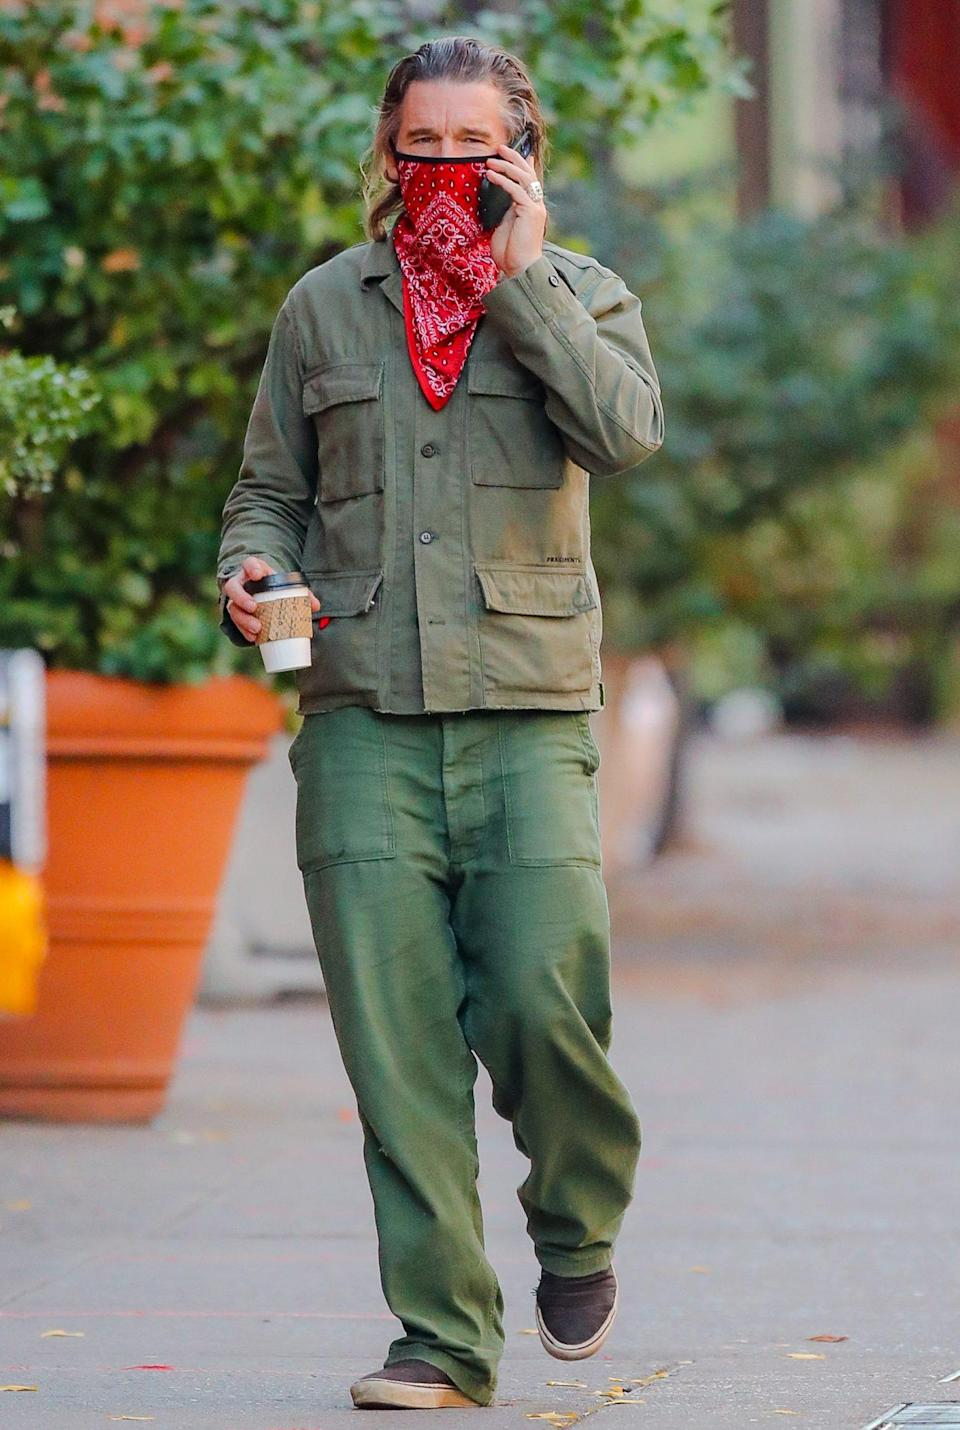 <p>Ethan Hawke is spotted out in N.Y.C. on Sunday, dressed in a military-style jacket with green pants and sneakers.</p>